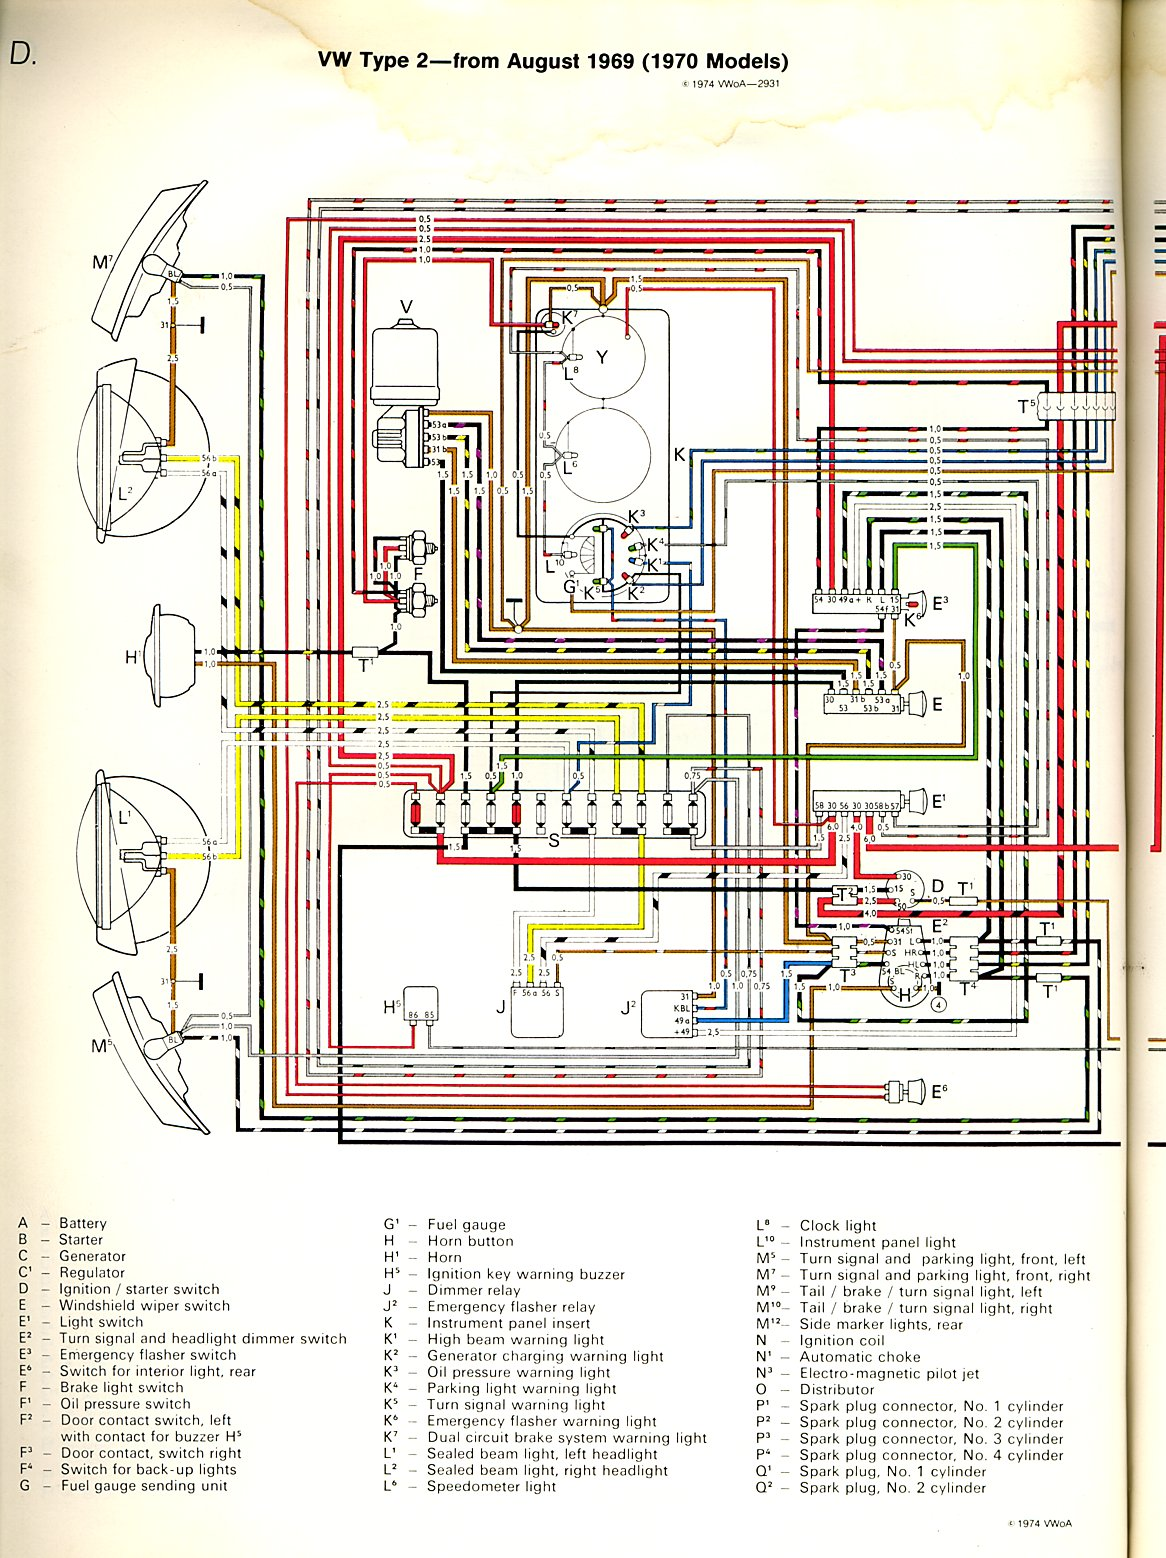 baybus_70a 80 series headlight wiring diagram rims wiring diagram \u2022 wiring Wiring Harness Diagram at sewacar.co